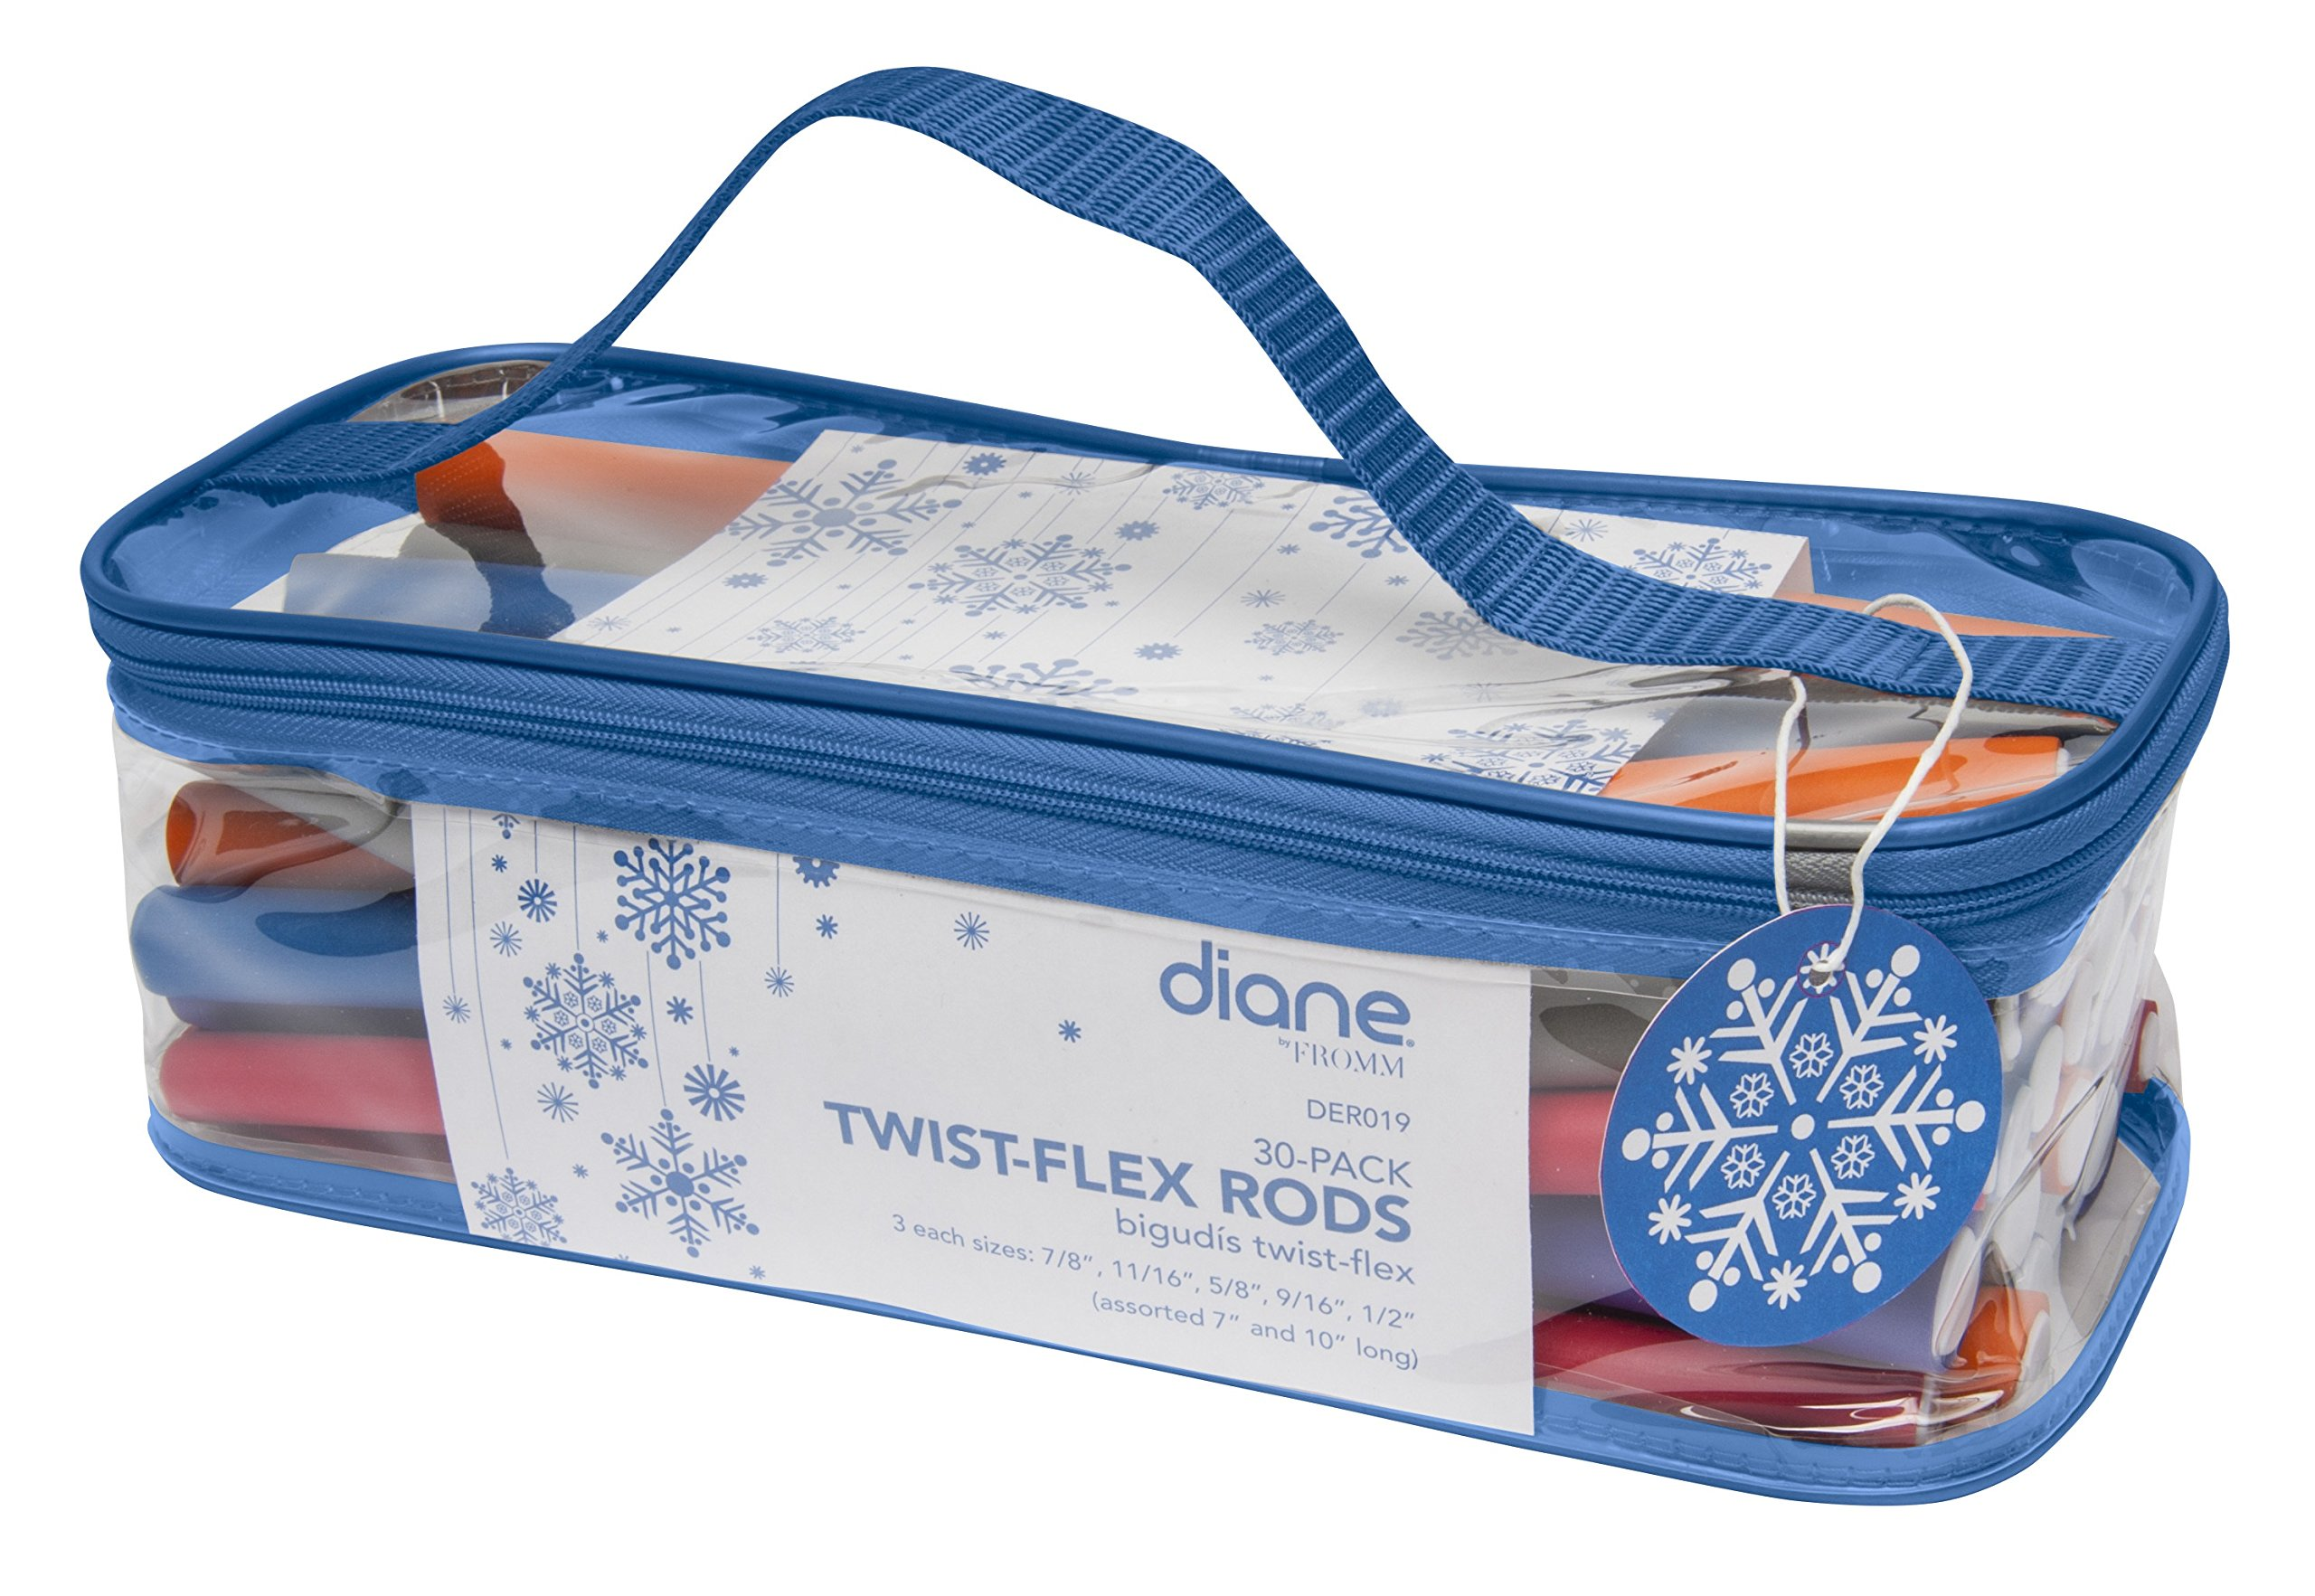 Diane Fromm Holiday Twist Flex Rods 30 Count DER019 Assorted Short and Long Sizes by Diane